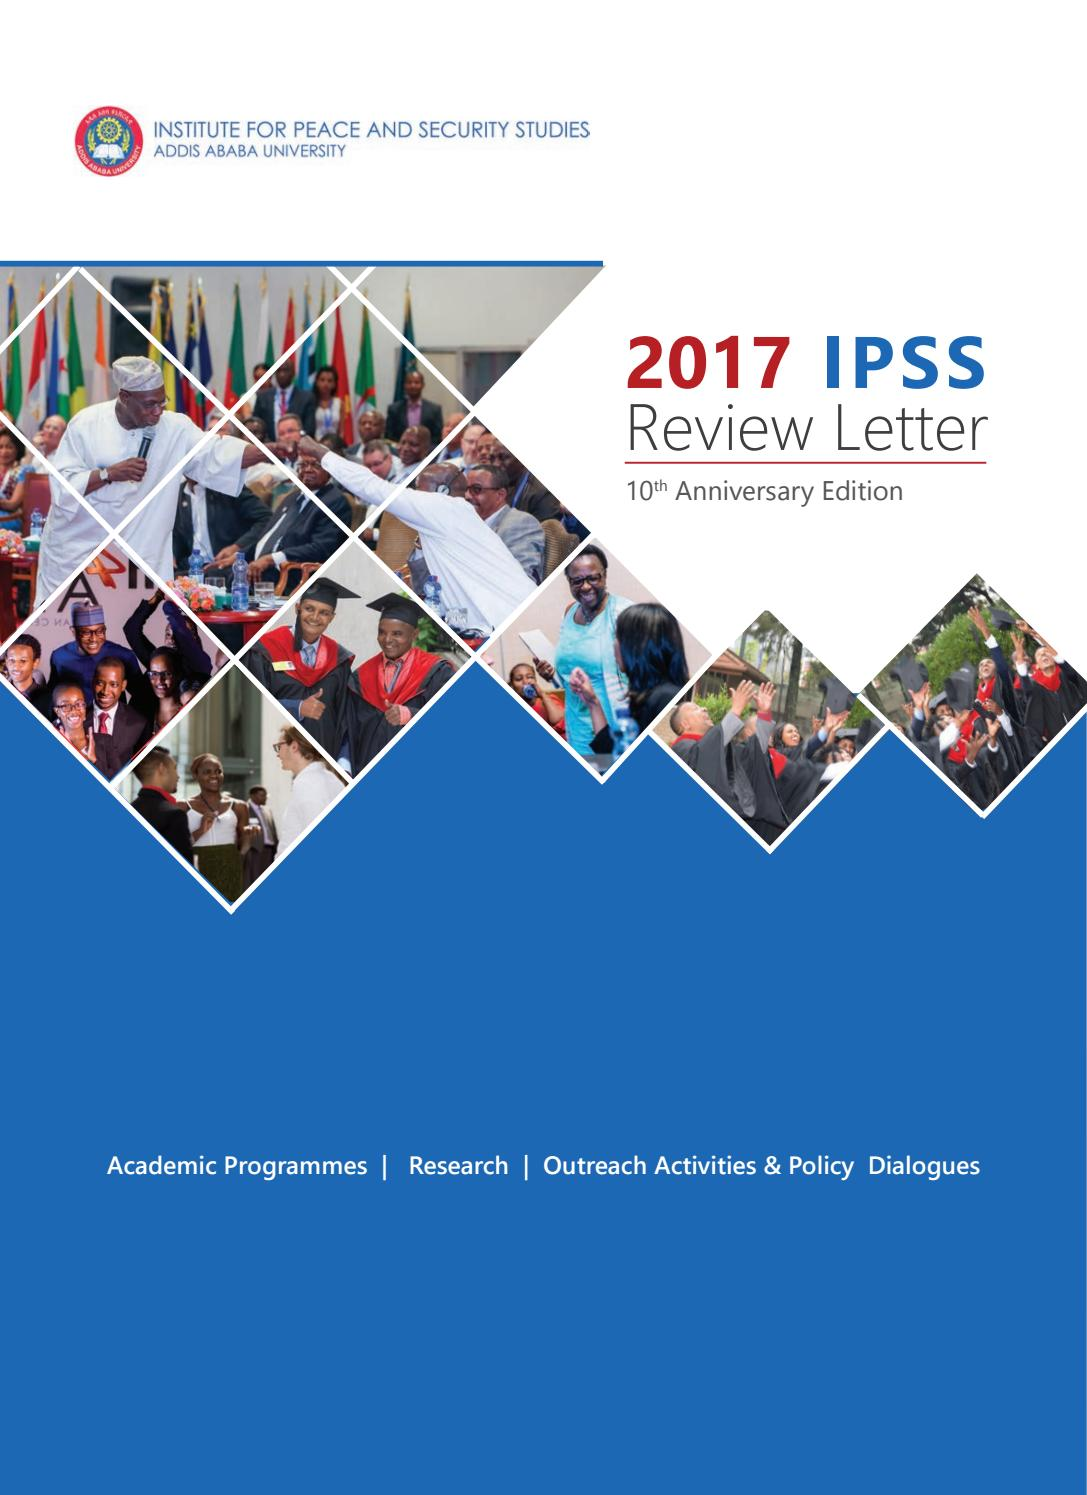 2017 IPSS Review Letter by ipss-addis - issuu